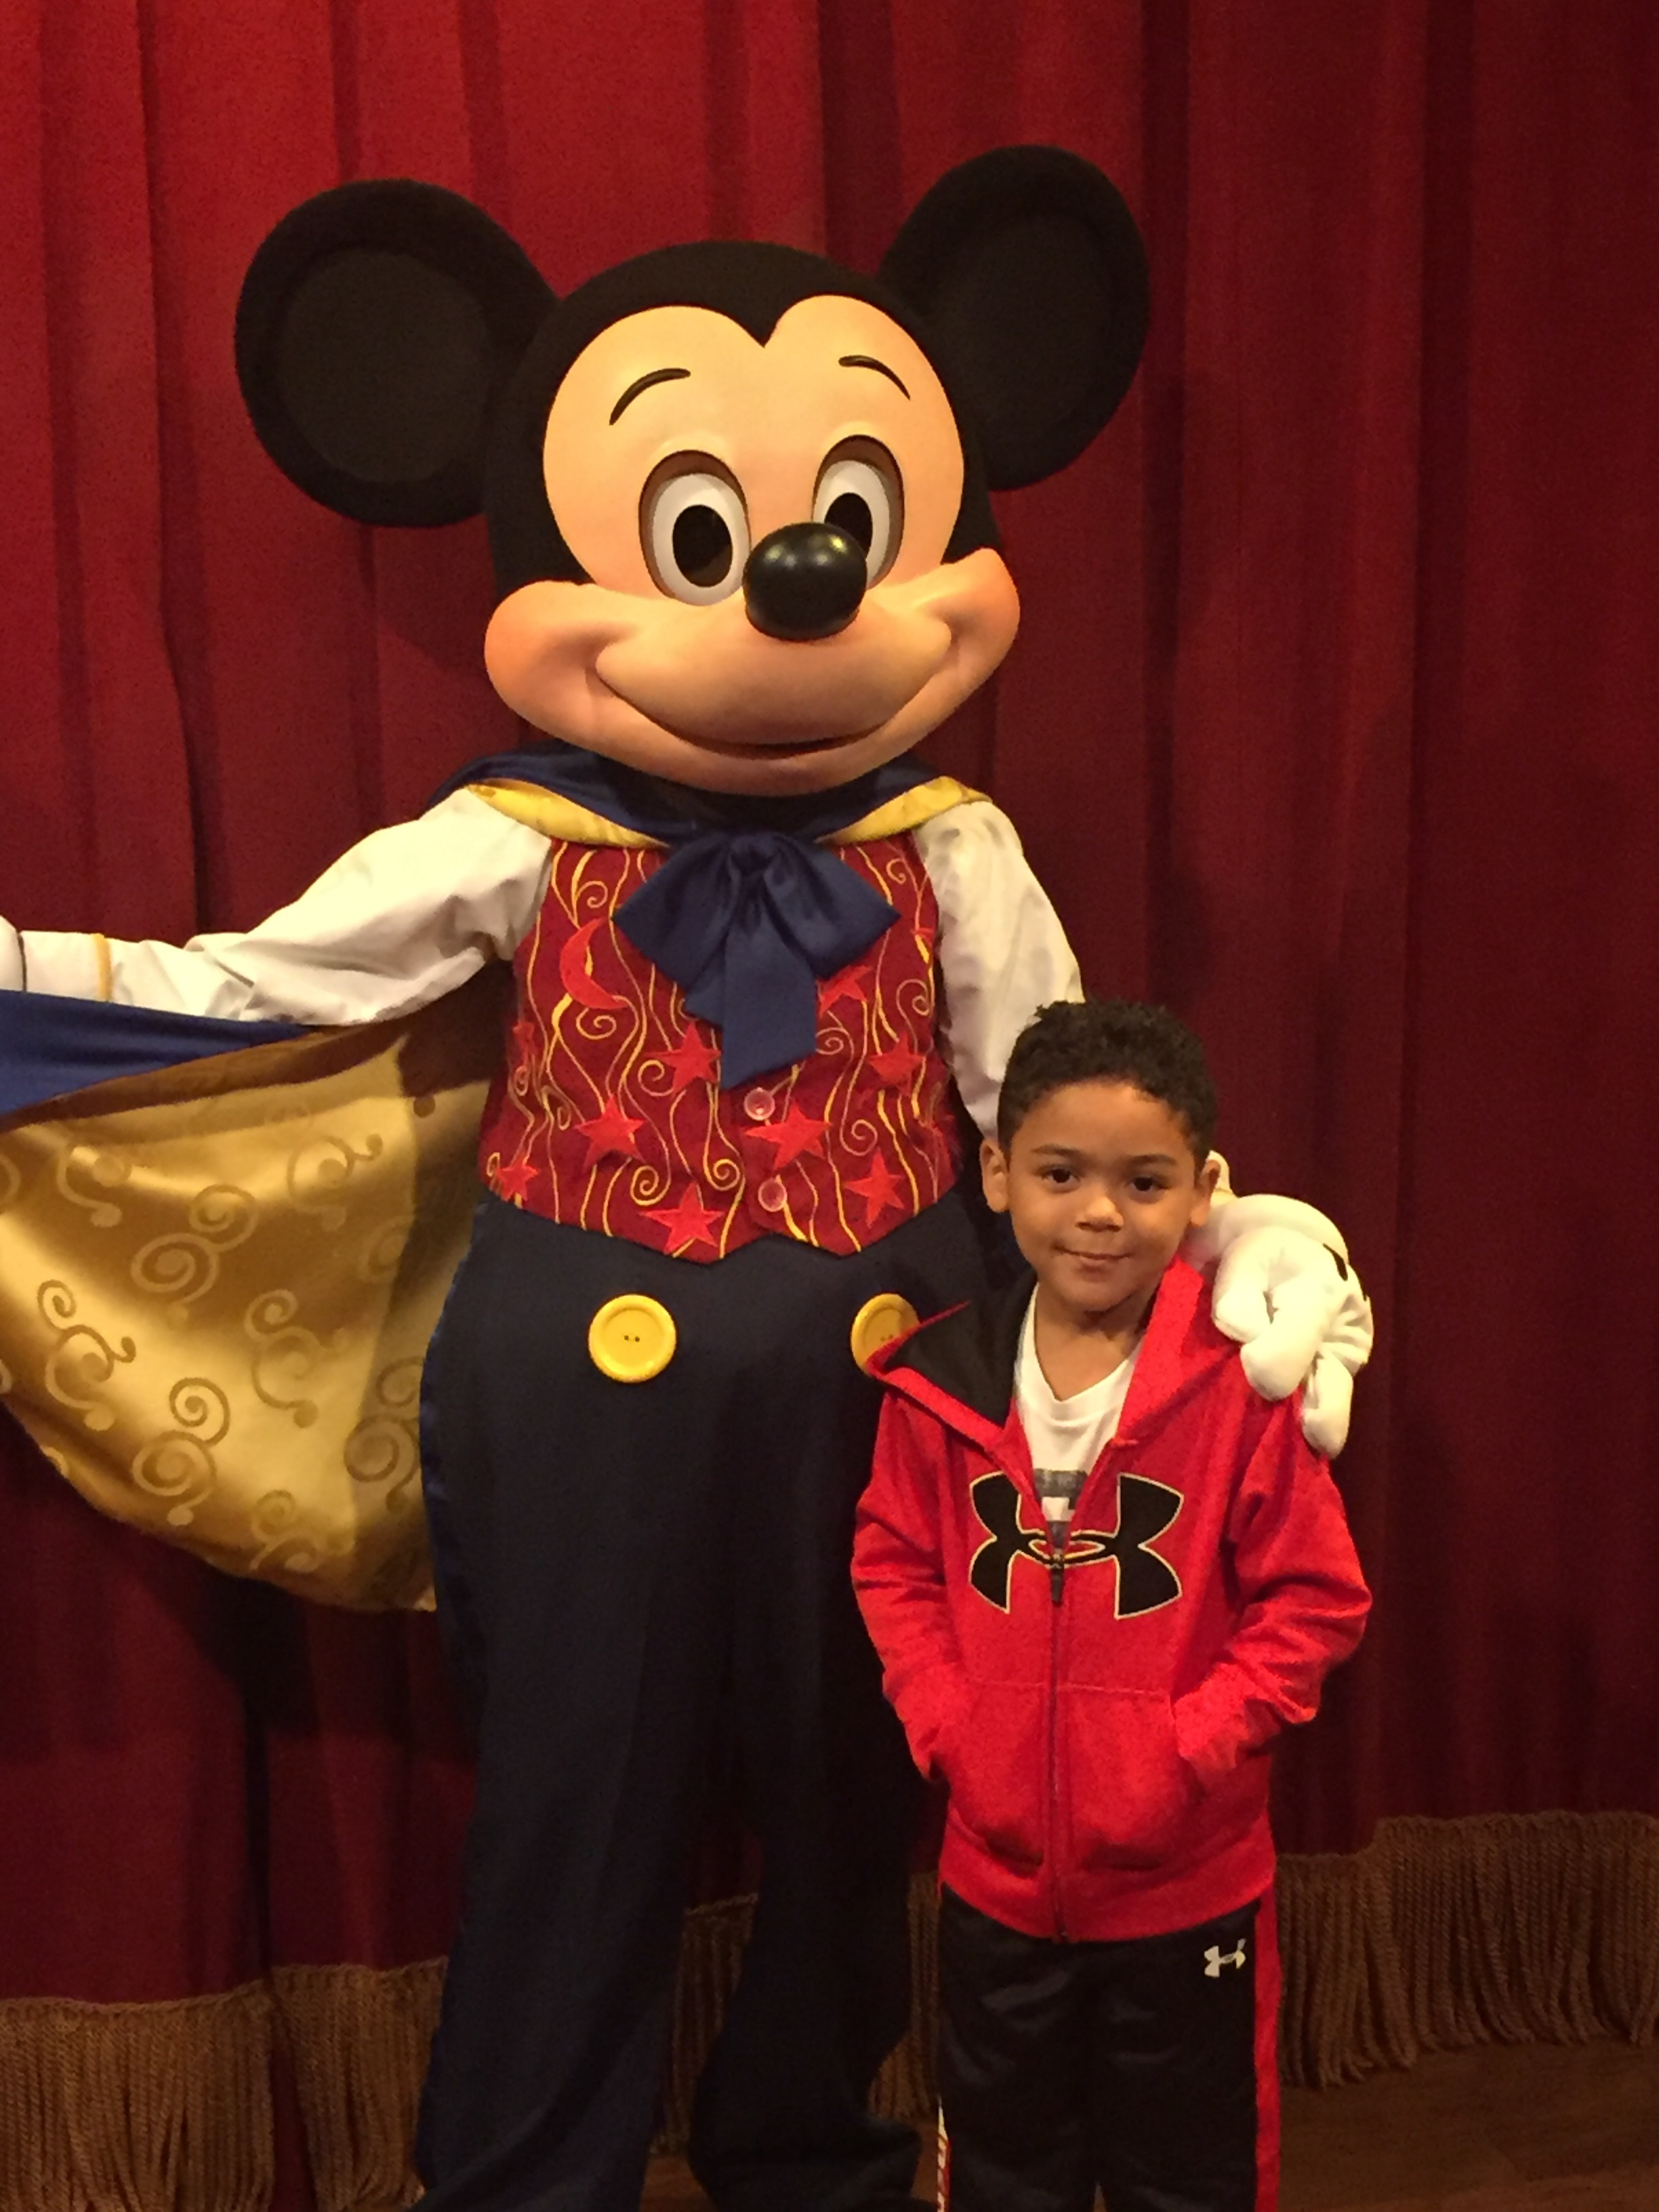 We love Mickey Mouse